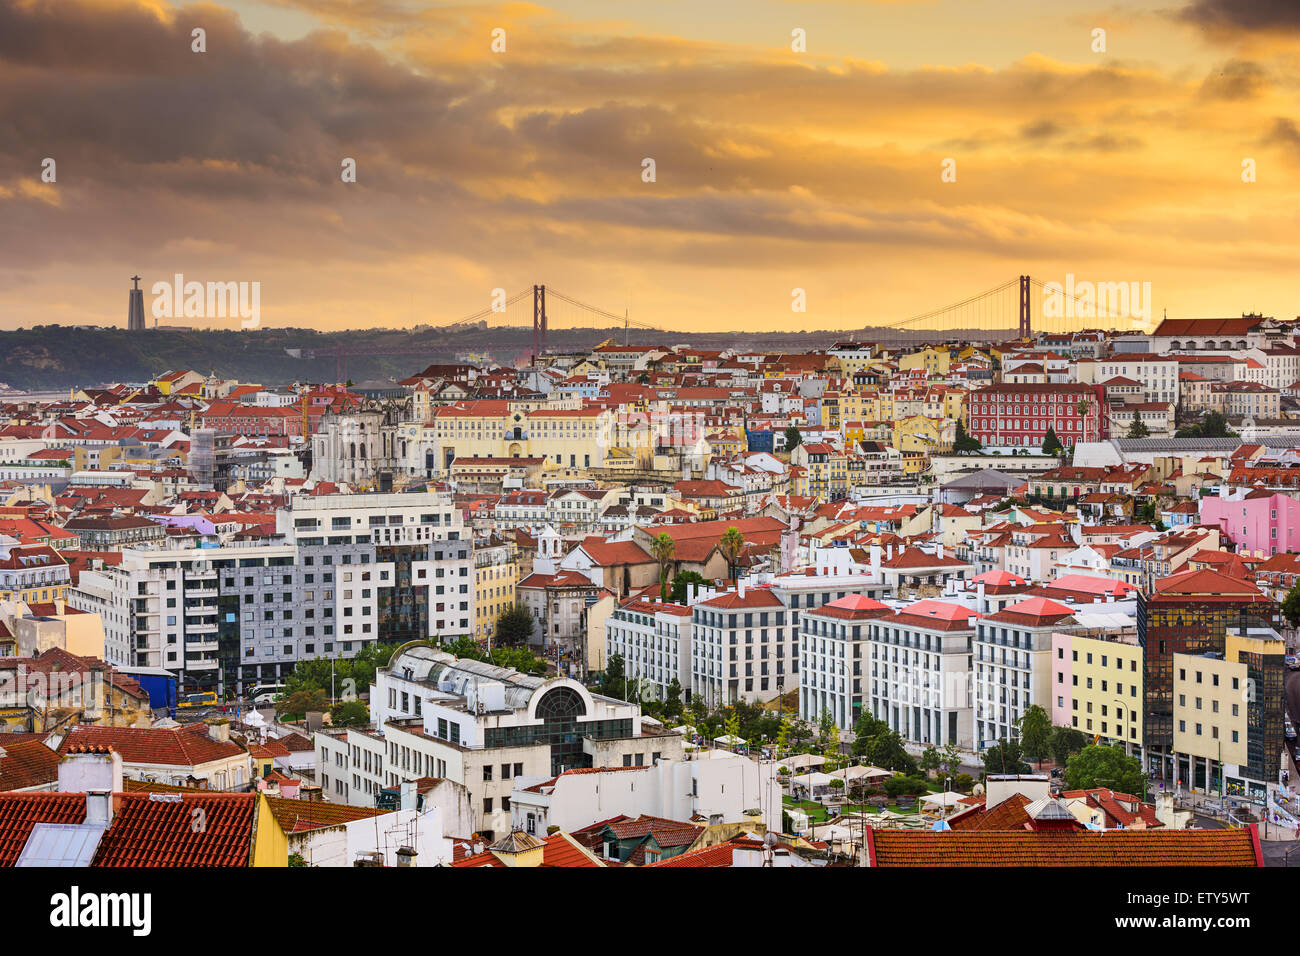 Lisbonne, Portugal skyline at sunset. Photo Stock